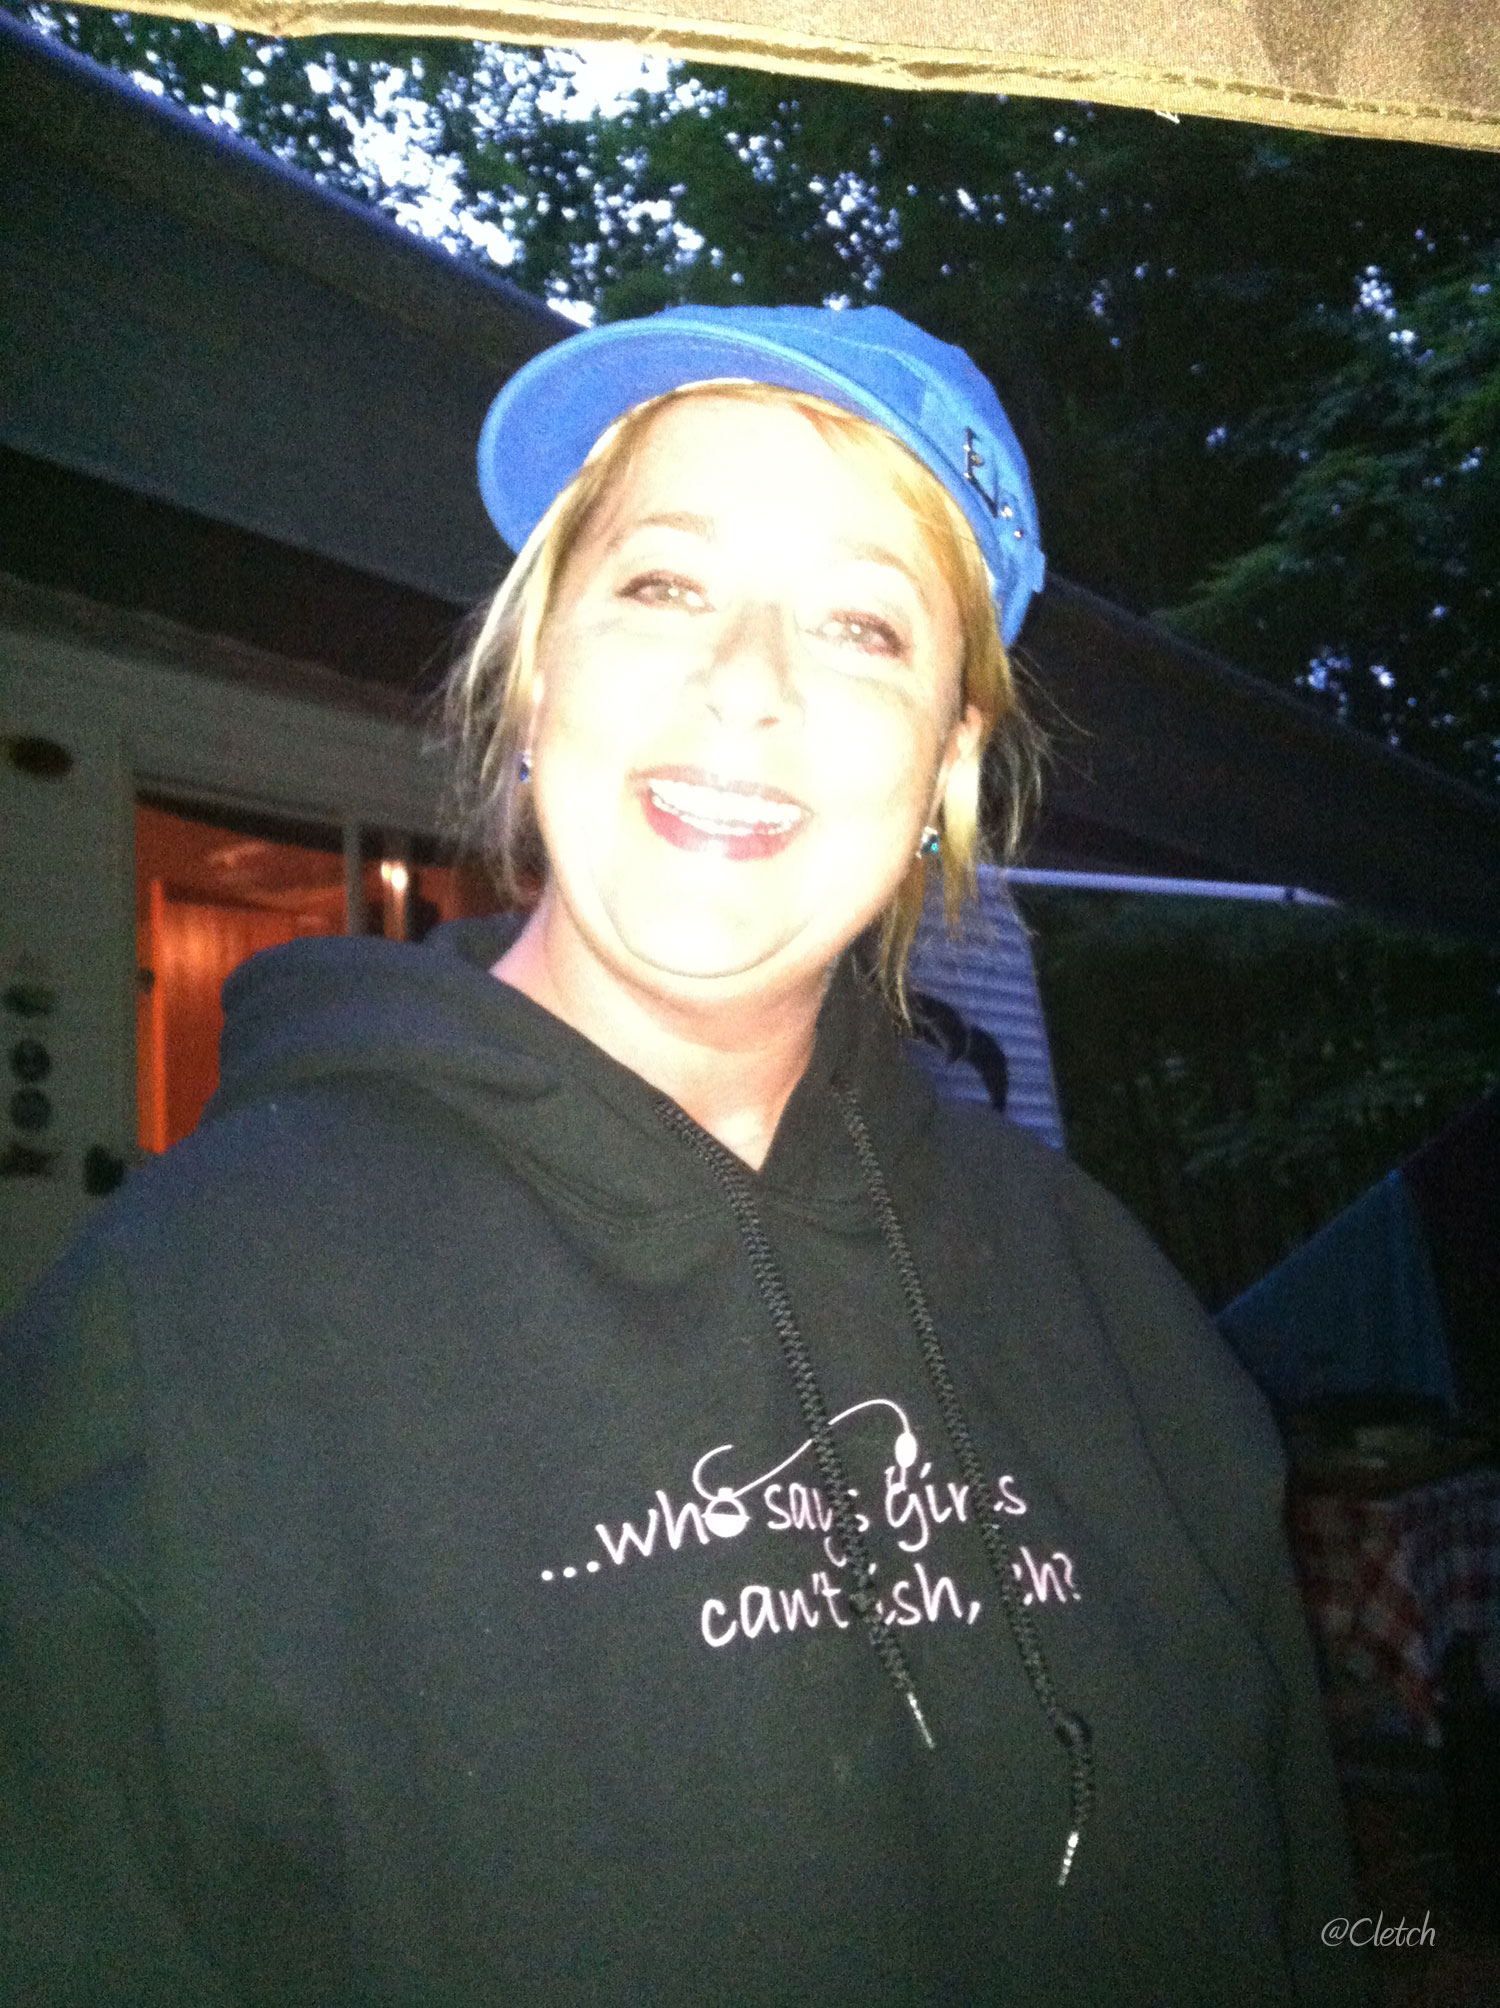 Judi camping it up!